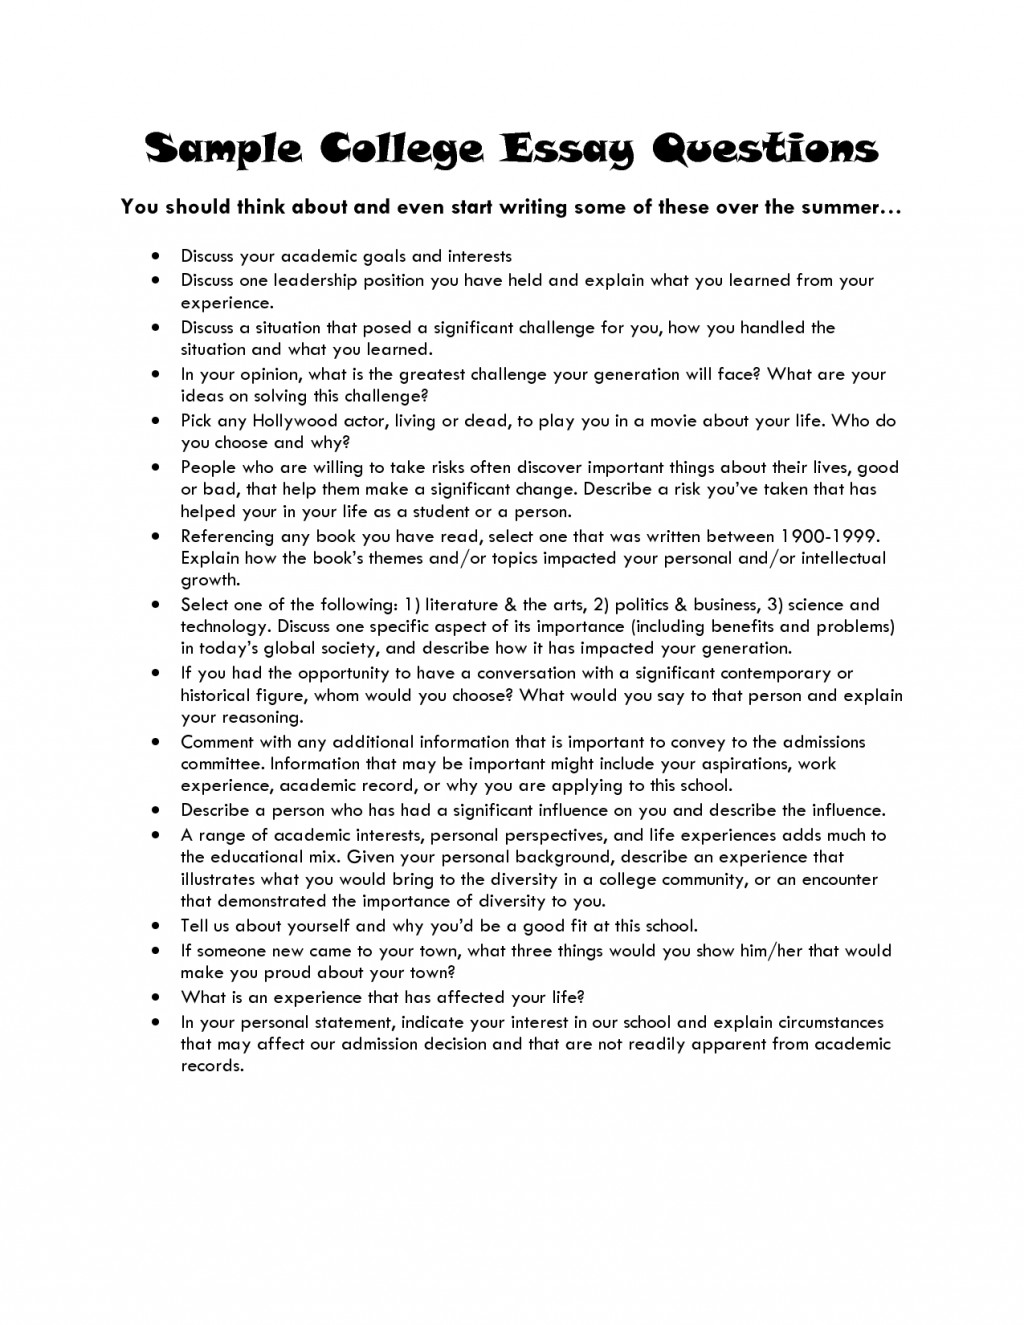 008 Sample Of College Essay Questions Professional Resume Templates Prompts For Ucla 4 List Texas Coalitions Csu Harvard Uc Stanford Impressive Writing Prompt Examples Amherst 2017 Pomona Large